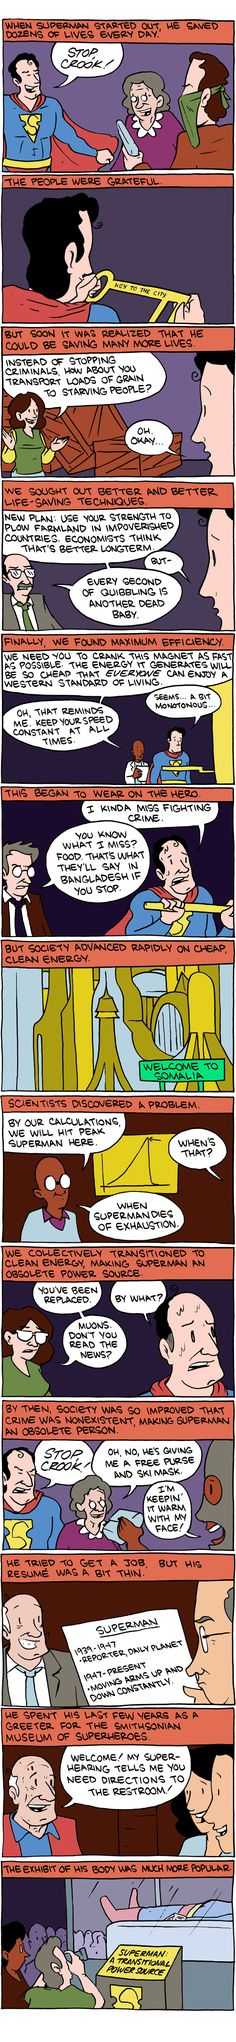 Superman as global source of electric power -- Saturday Morning Breakfast Cereal